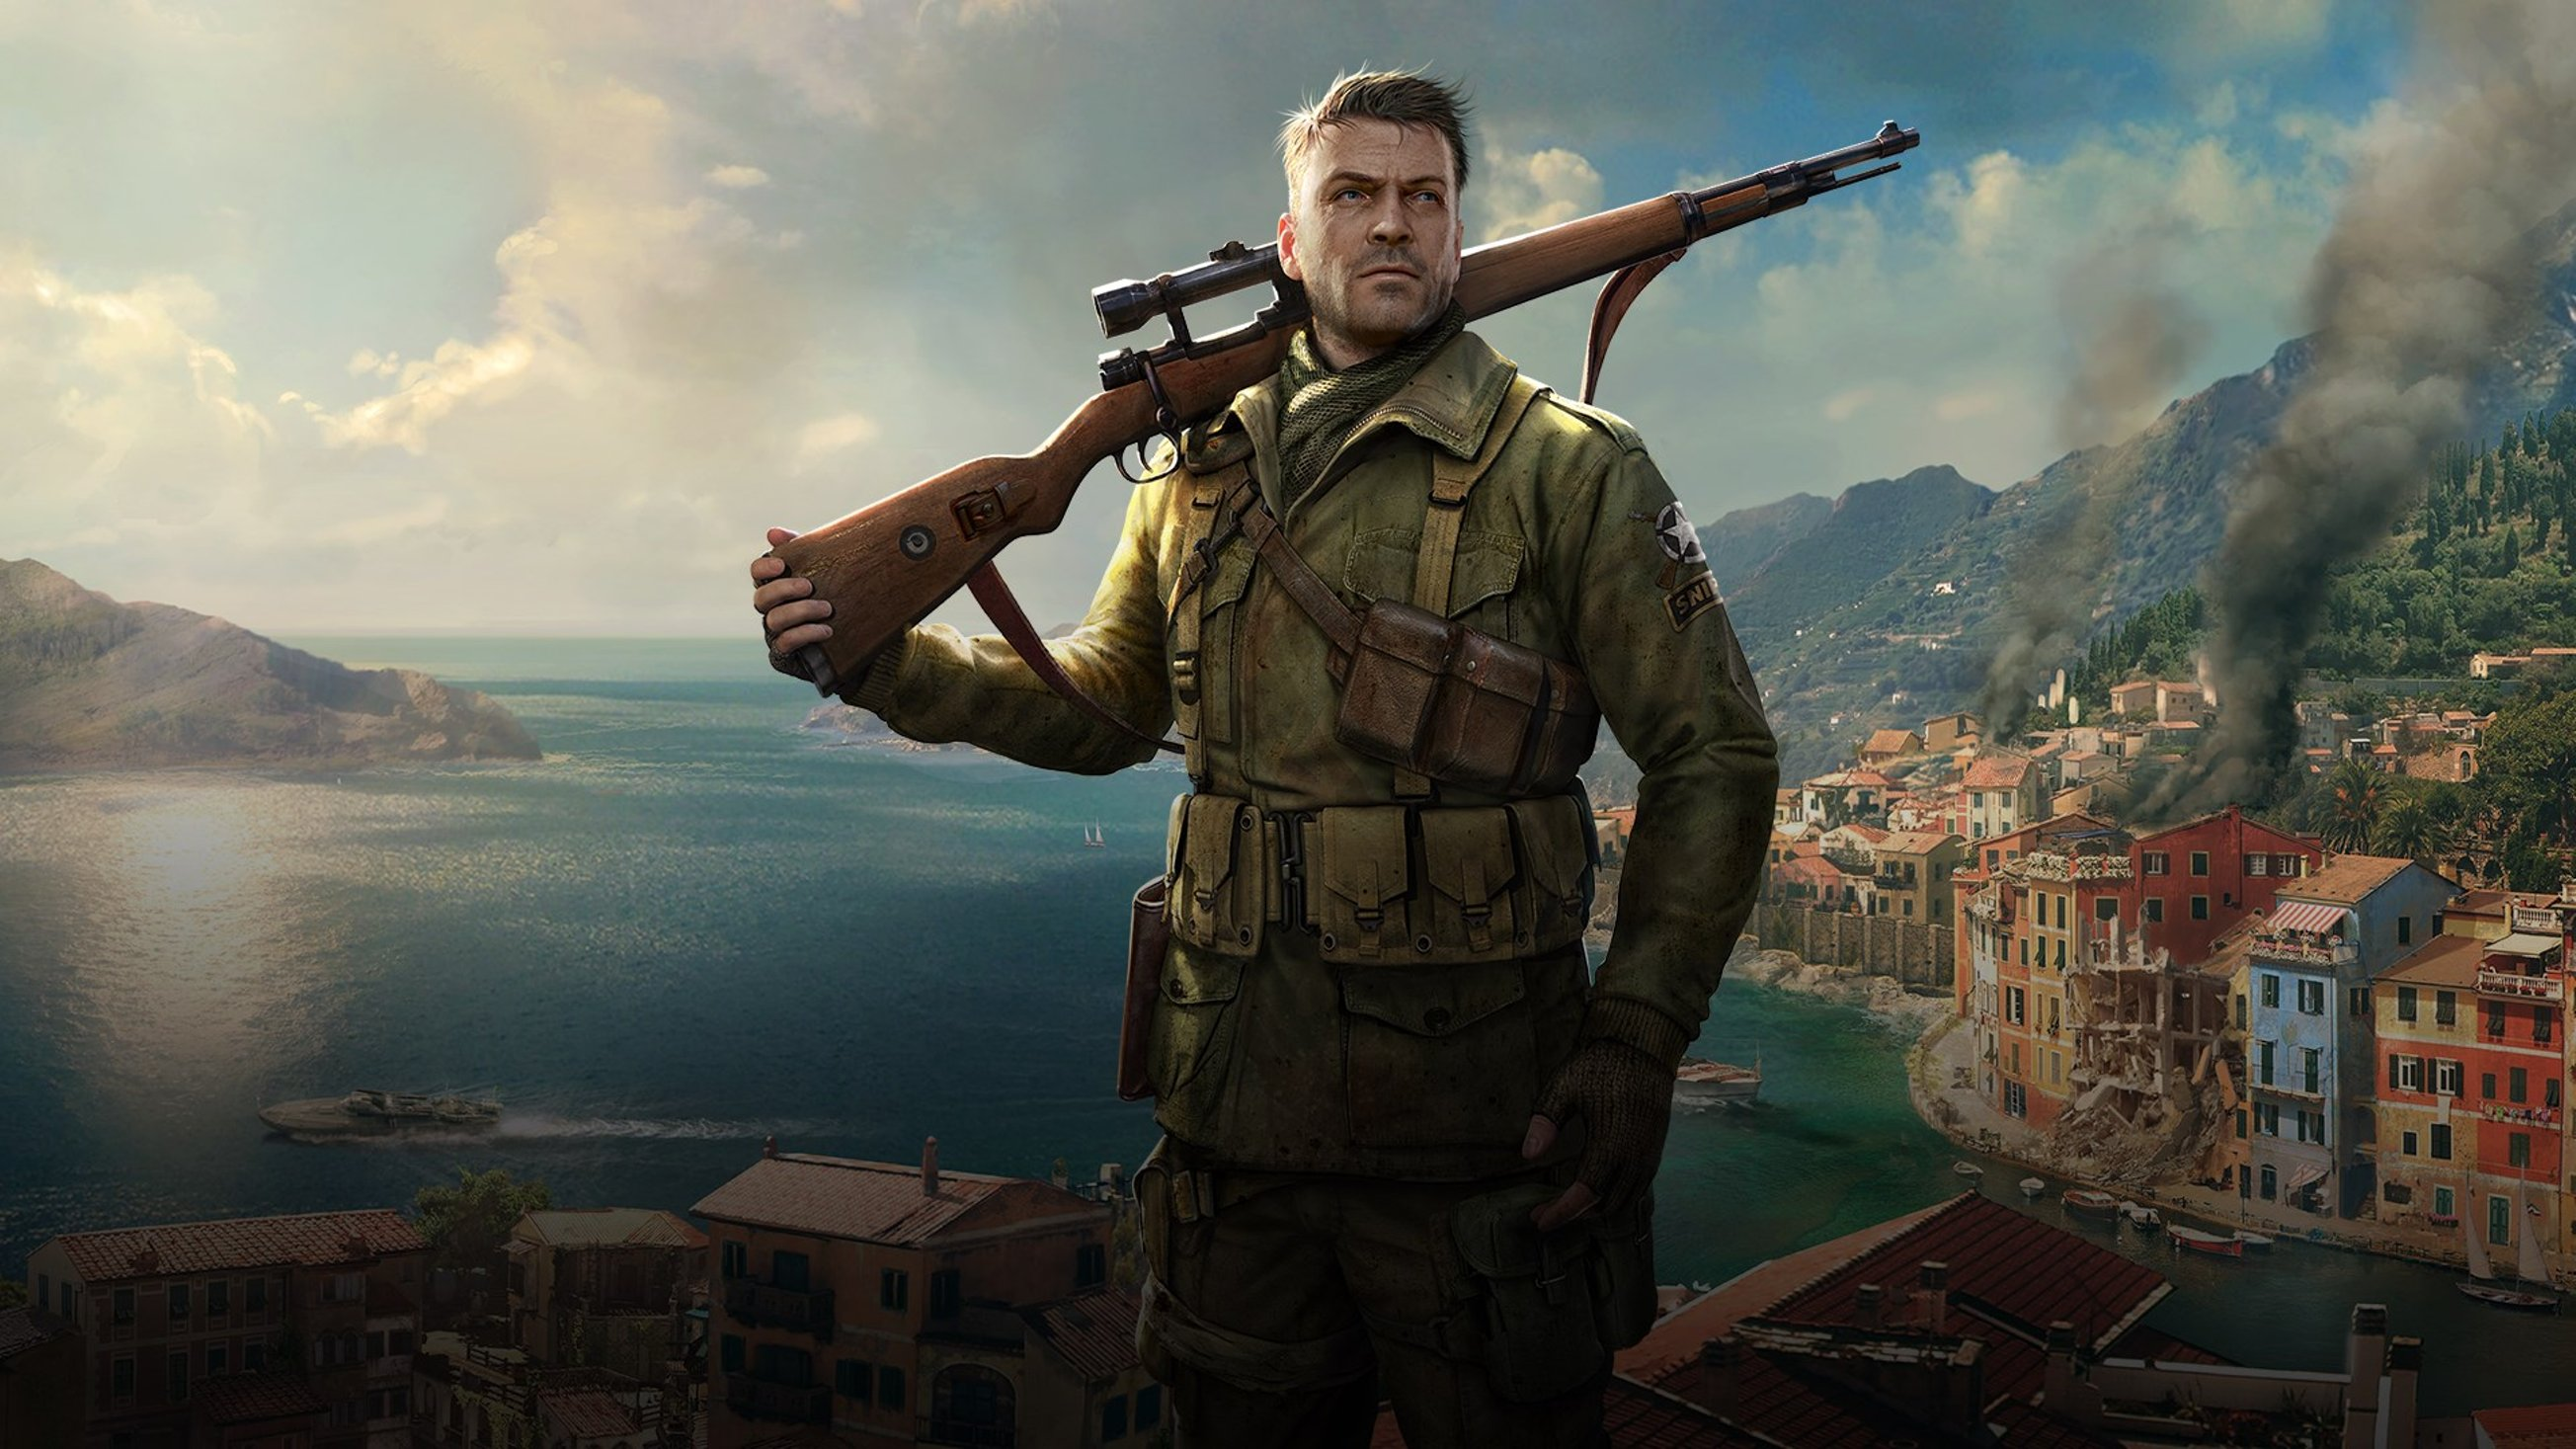 В августе подписчикам PS Plus выдадут Wipeout: Omega Collection и Sniper Elite 4